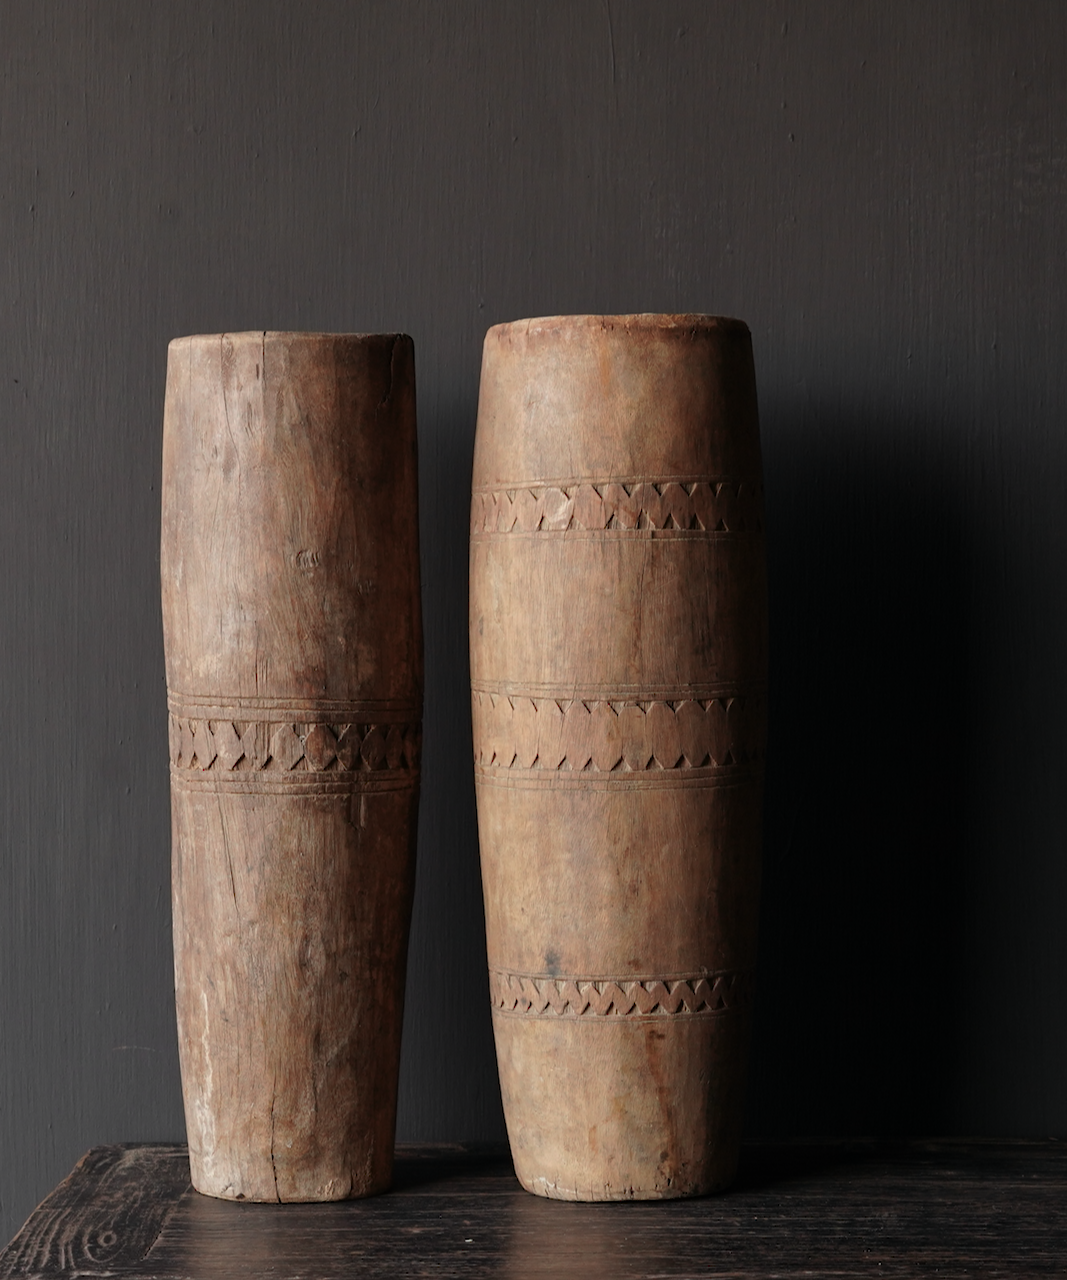 Unique old wooden vase without bottom made from an authentic drum-4